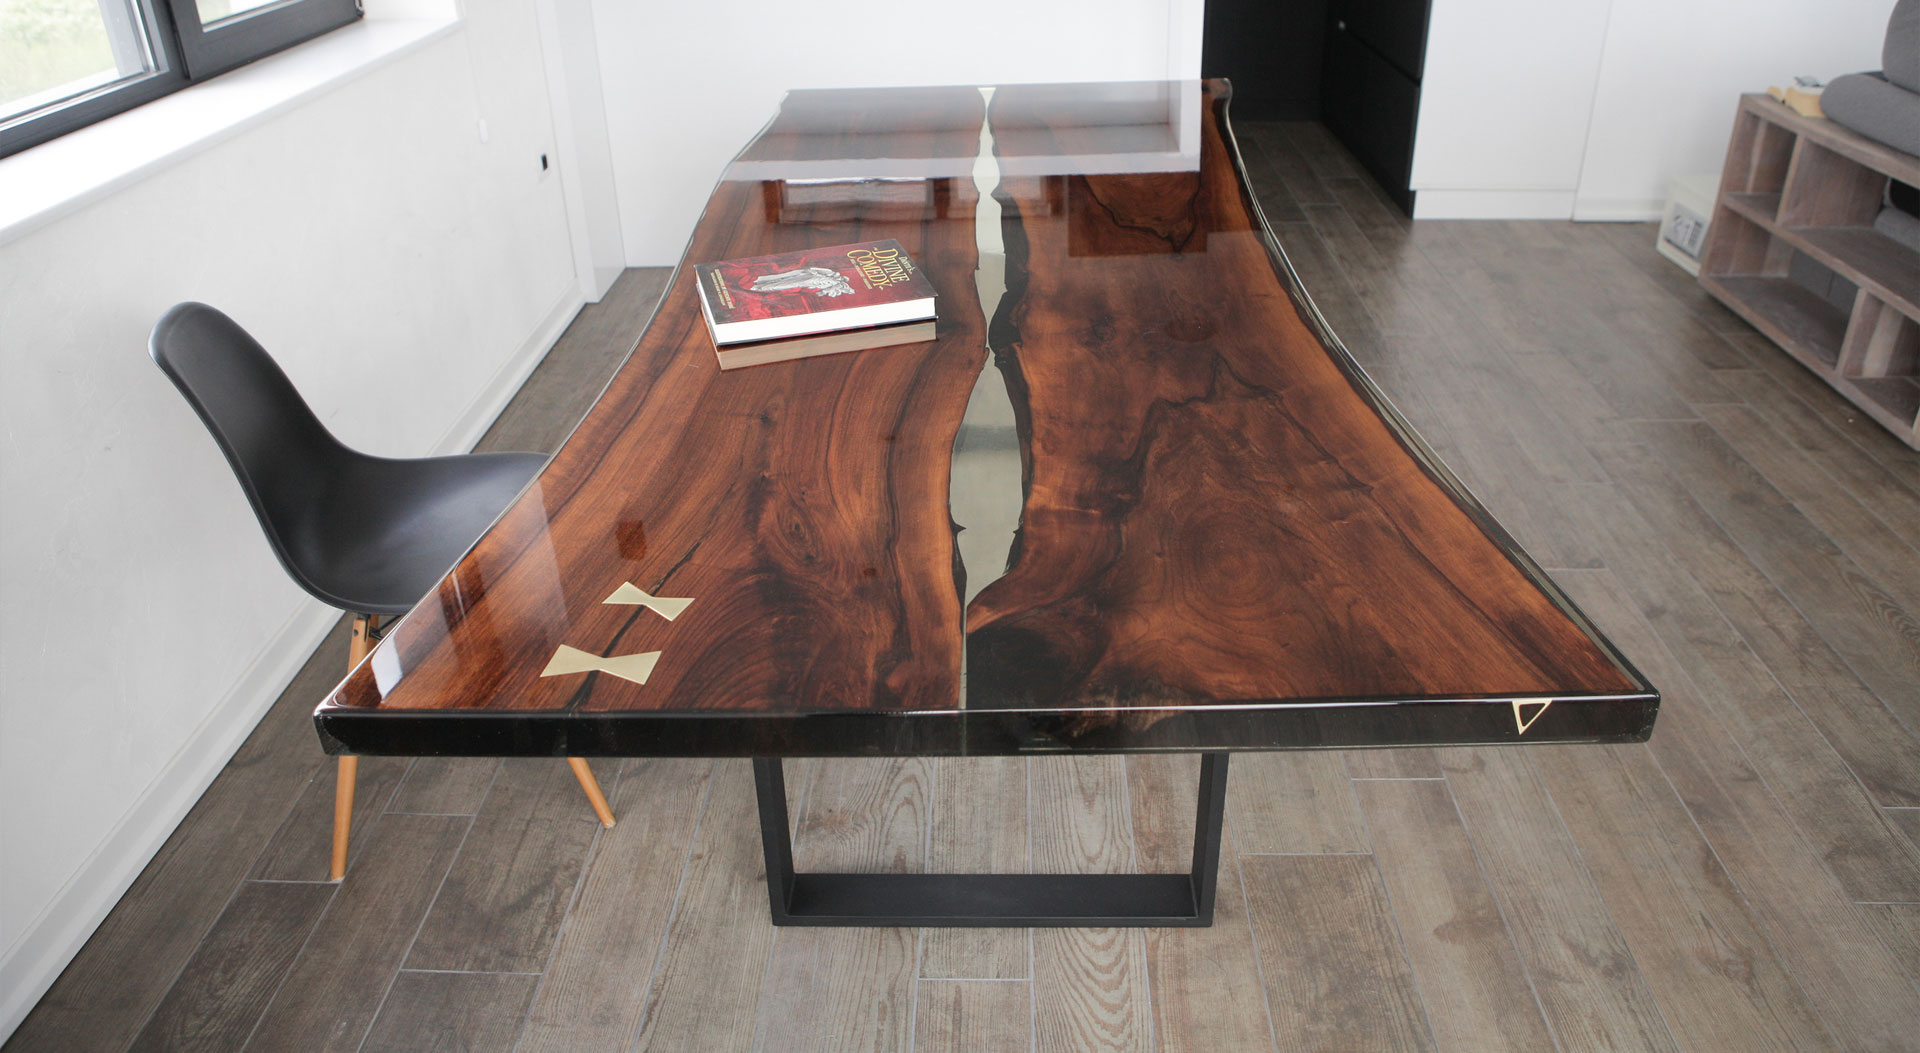 epoxy resin tables nabla furniture. Black Bedroom Furniture Sets. Home Design Ideas